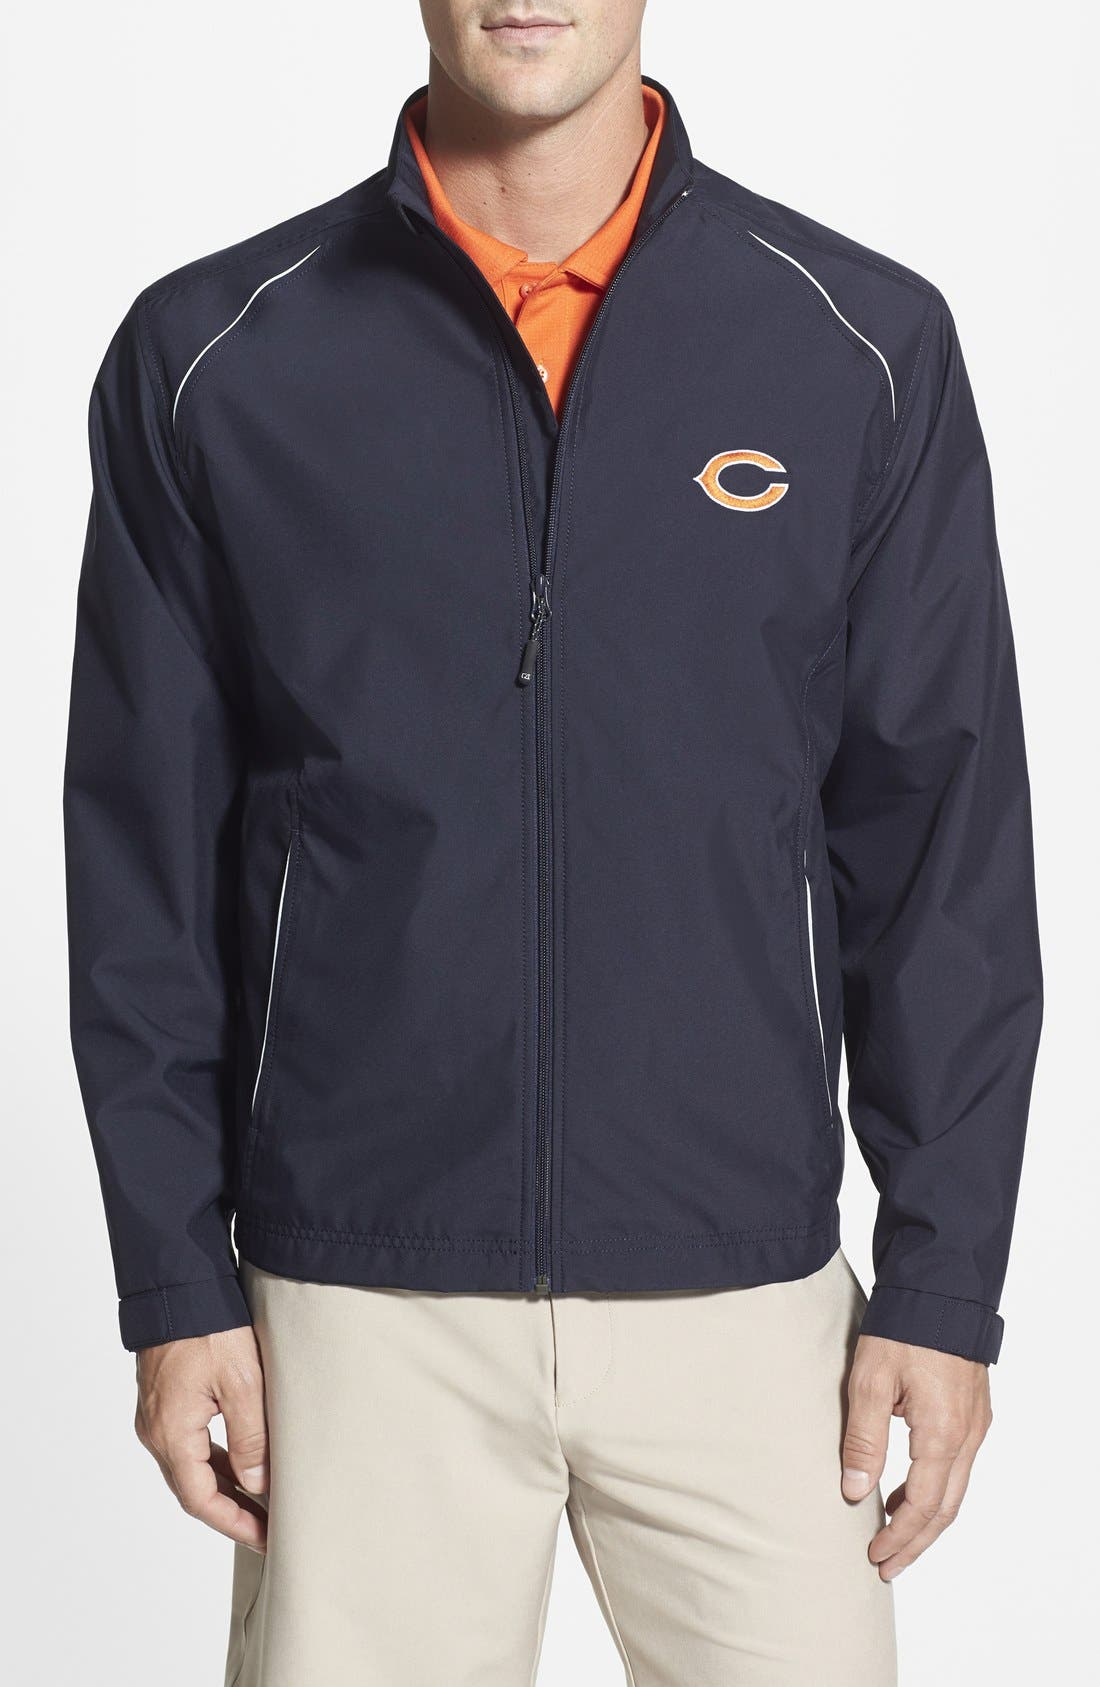 Cutter & Buck 'Chicago Bears - Beacon' WeatherTec Wind & Water Resistant Jacket